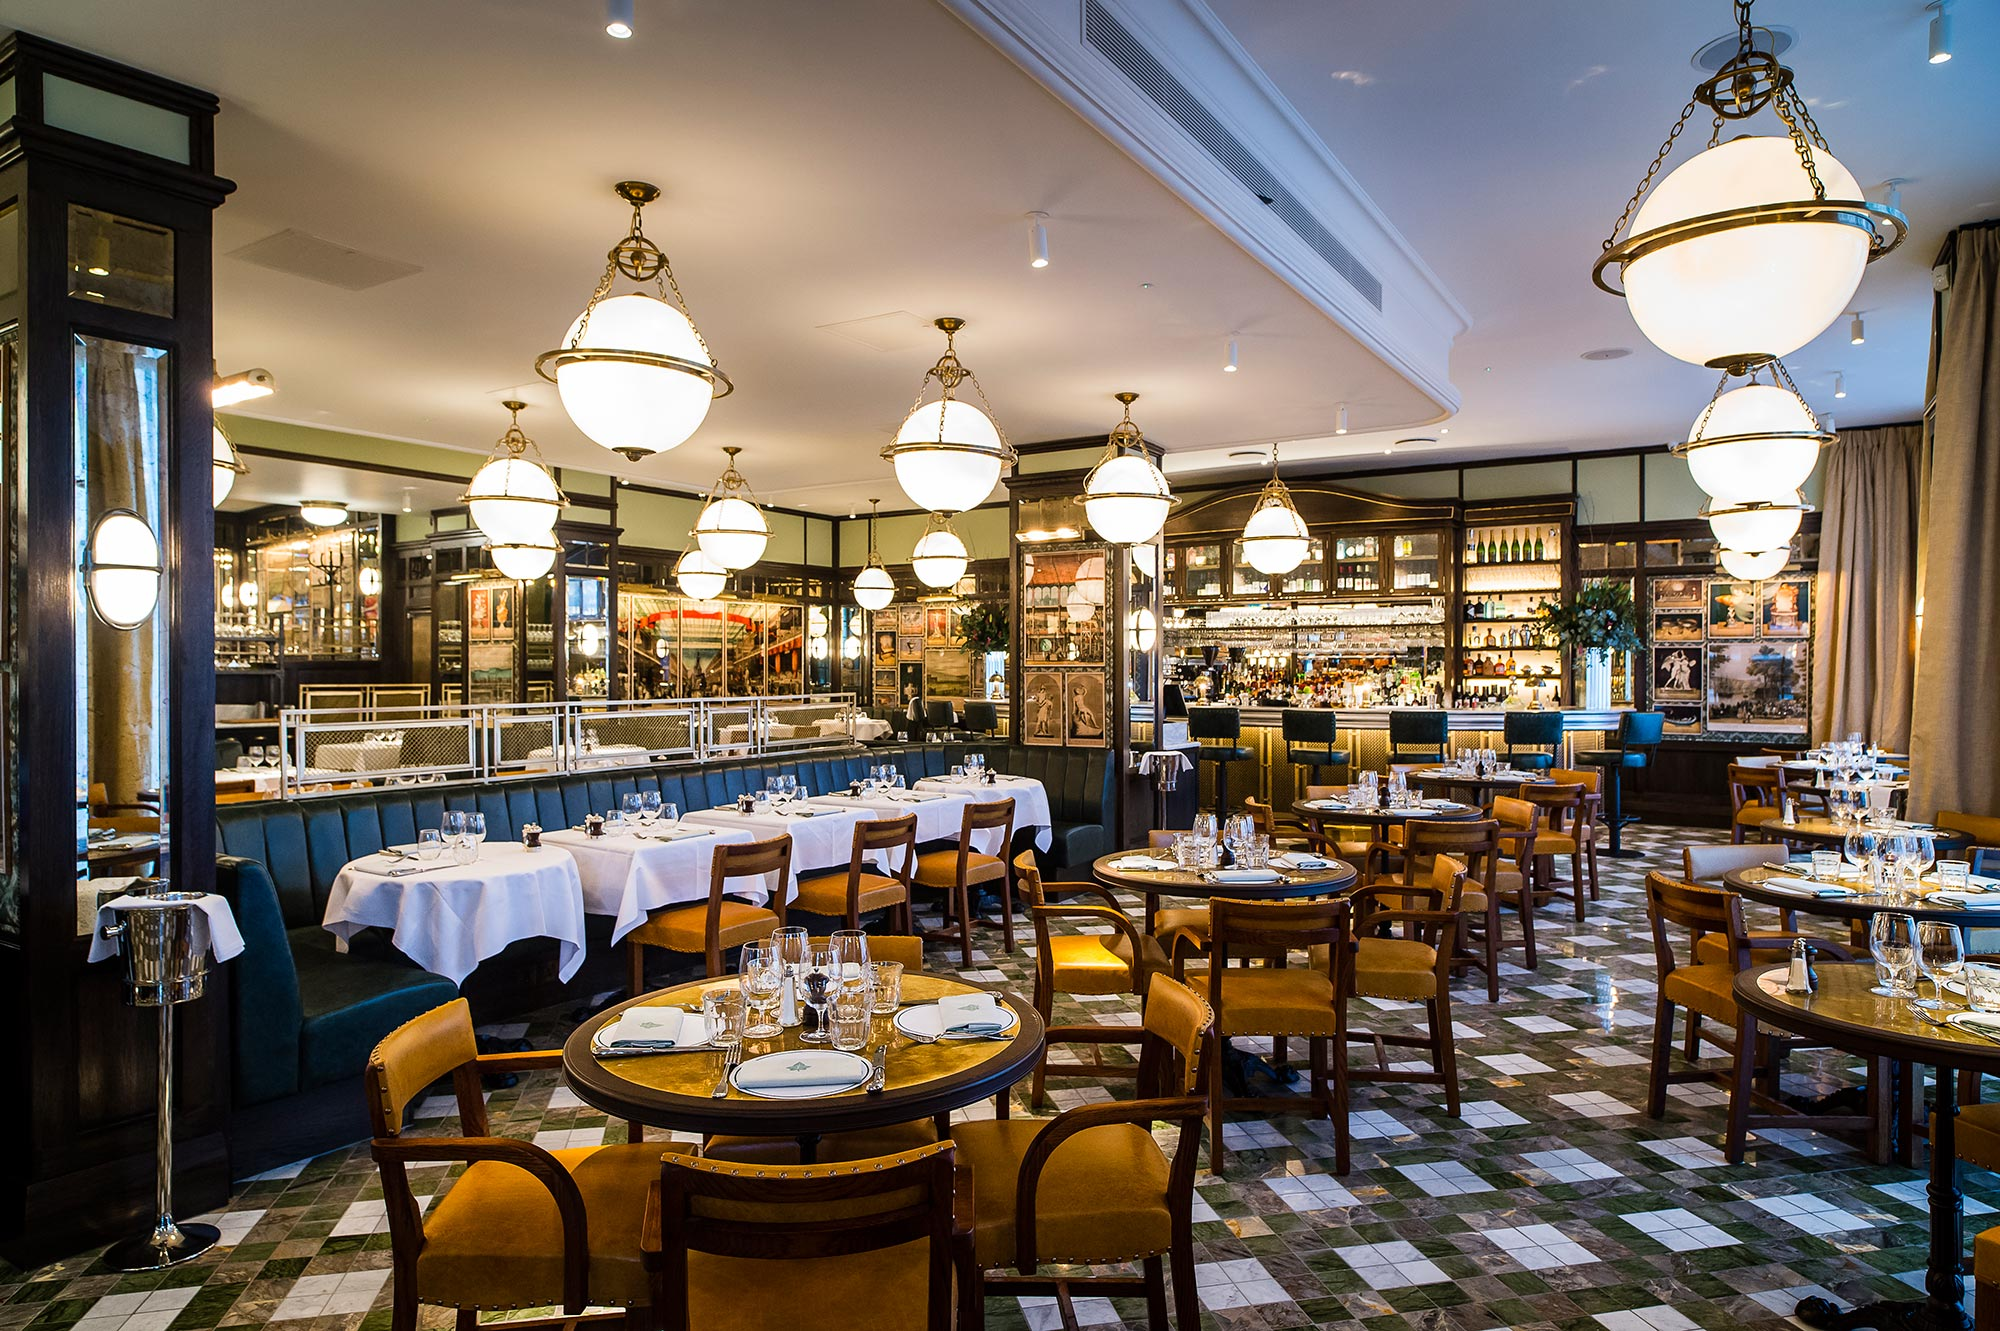 The-Ivy-Kensington-Brasserie-Restaurant-1.jpg